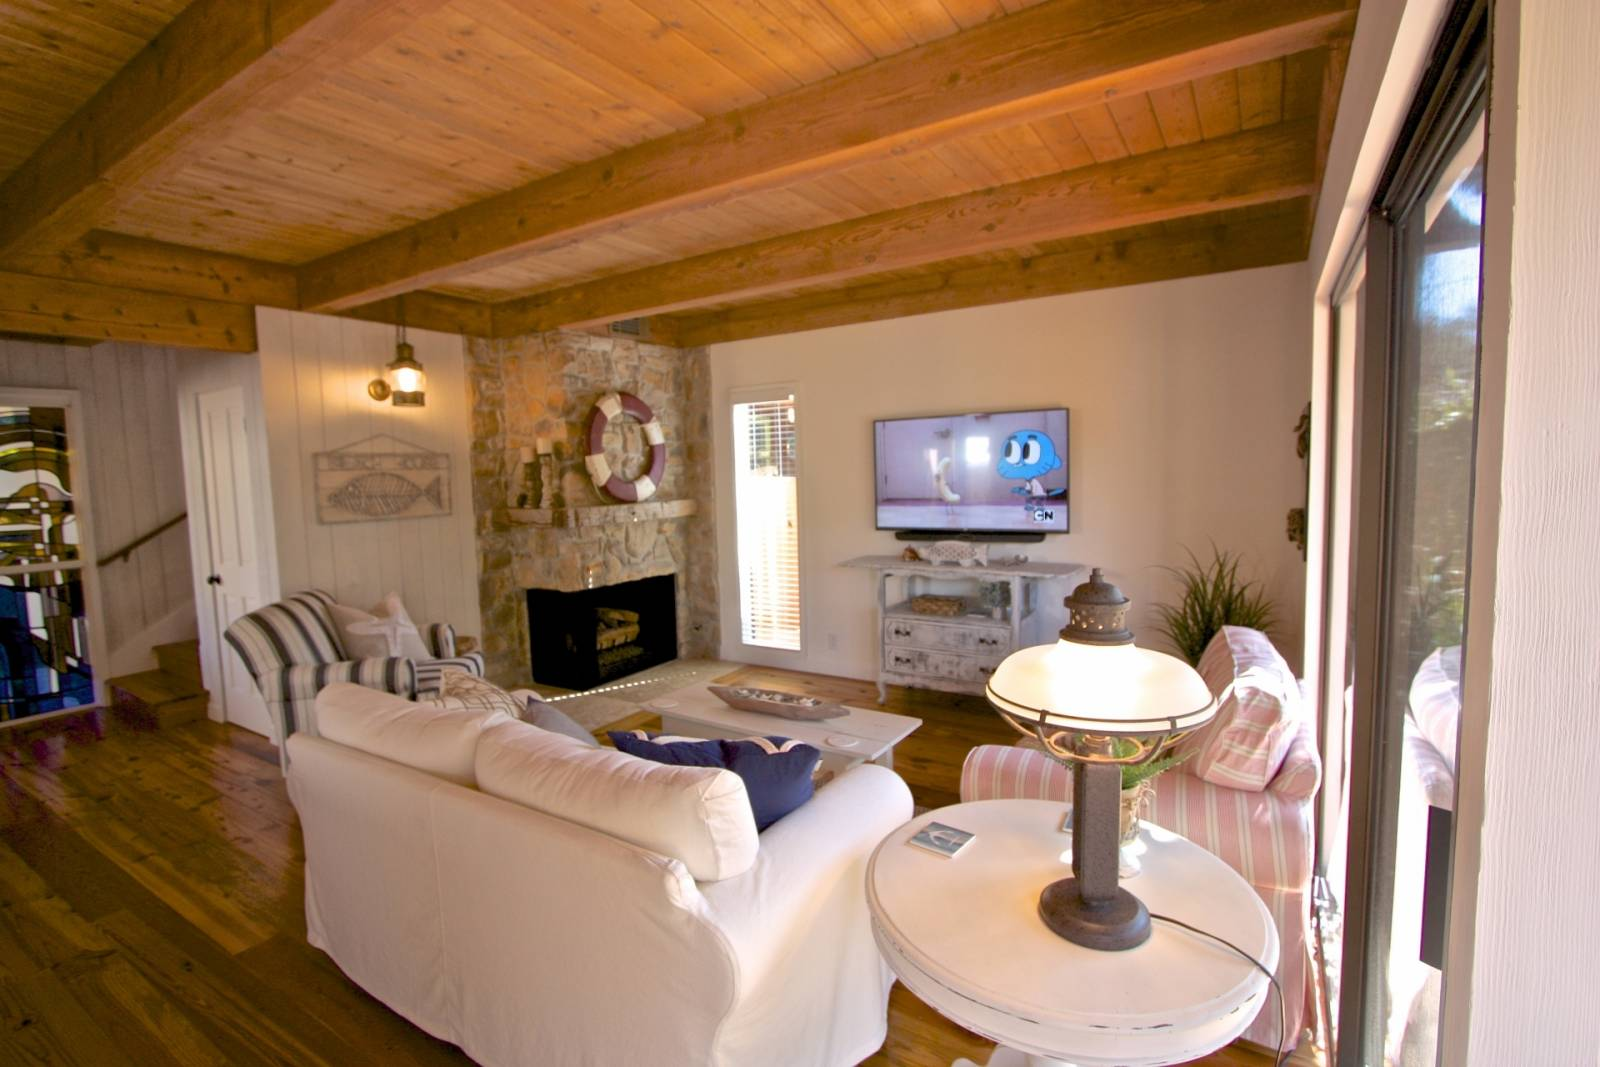 laguna cottage villas at sunset girlfriend antigua great luxury beach rental rentals cove in oceanfront cottages getaway